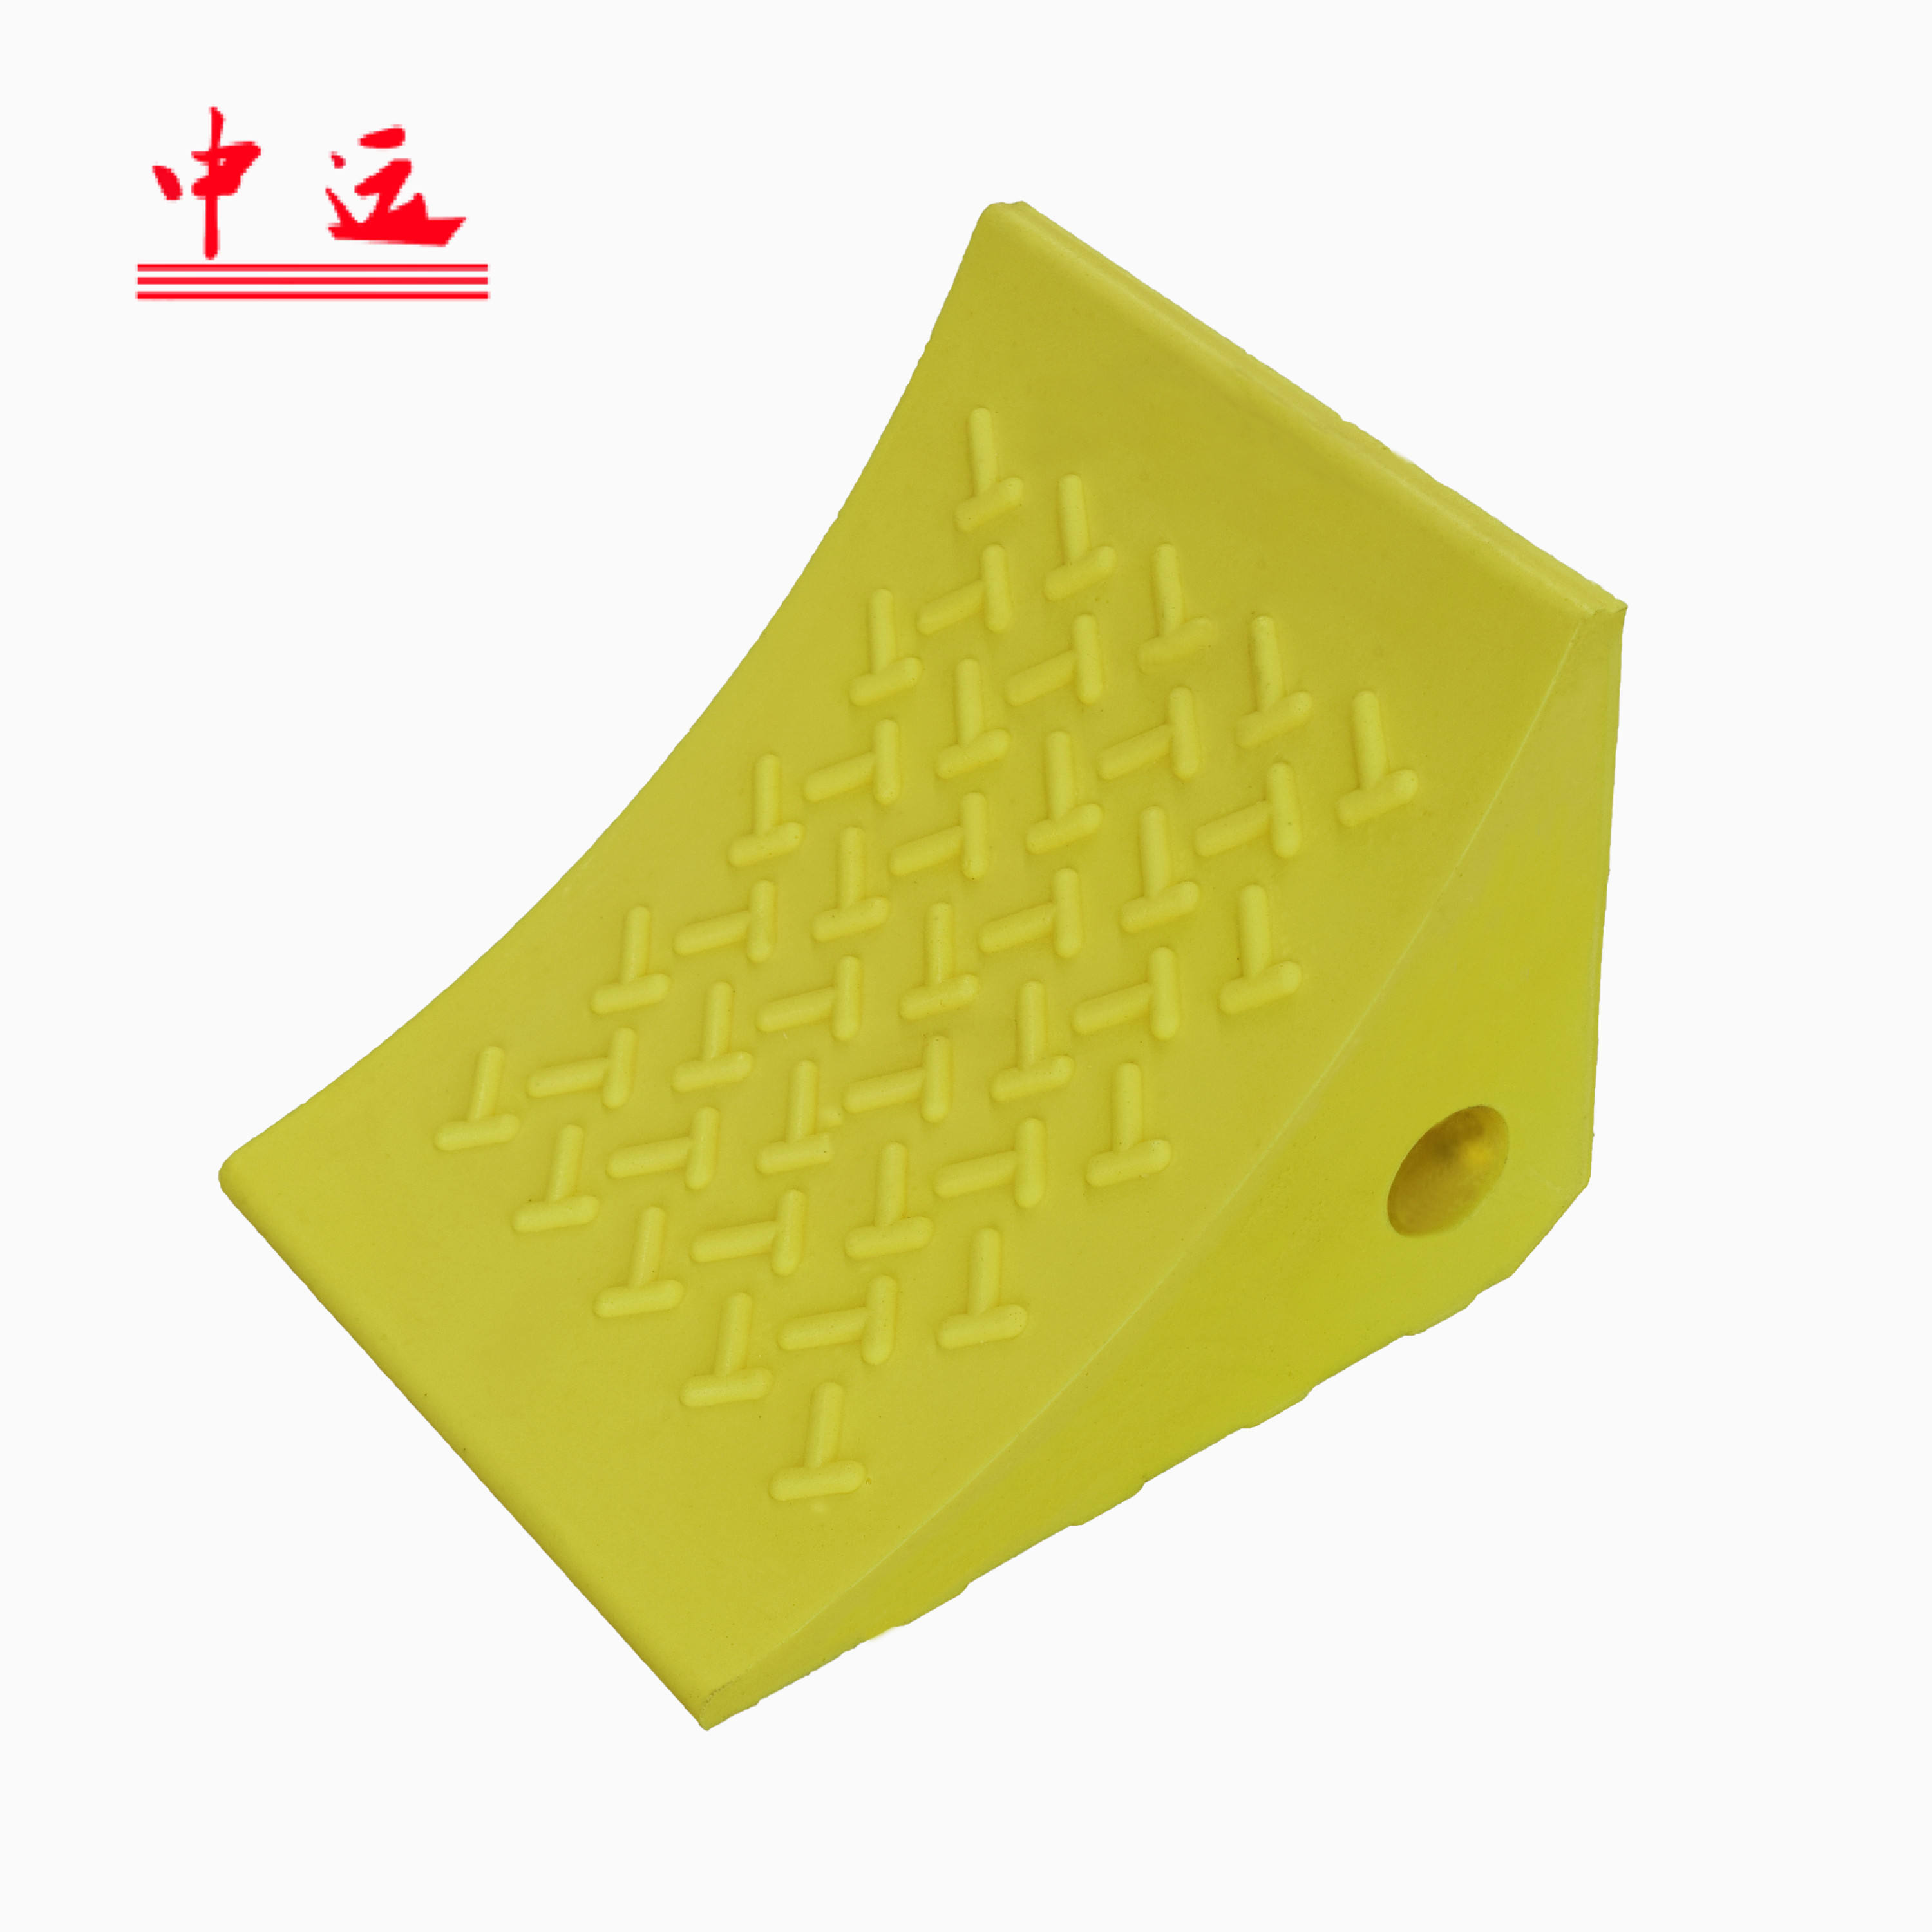 yellow or orange Normal Purpose Polyurethane wheel chock